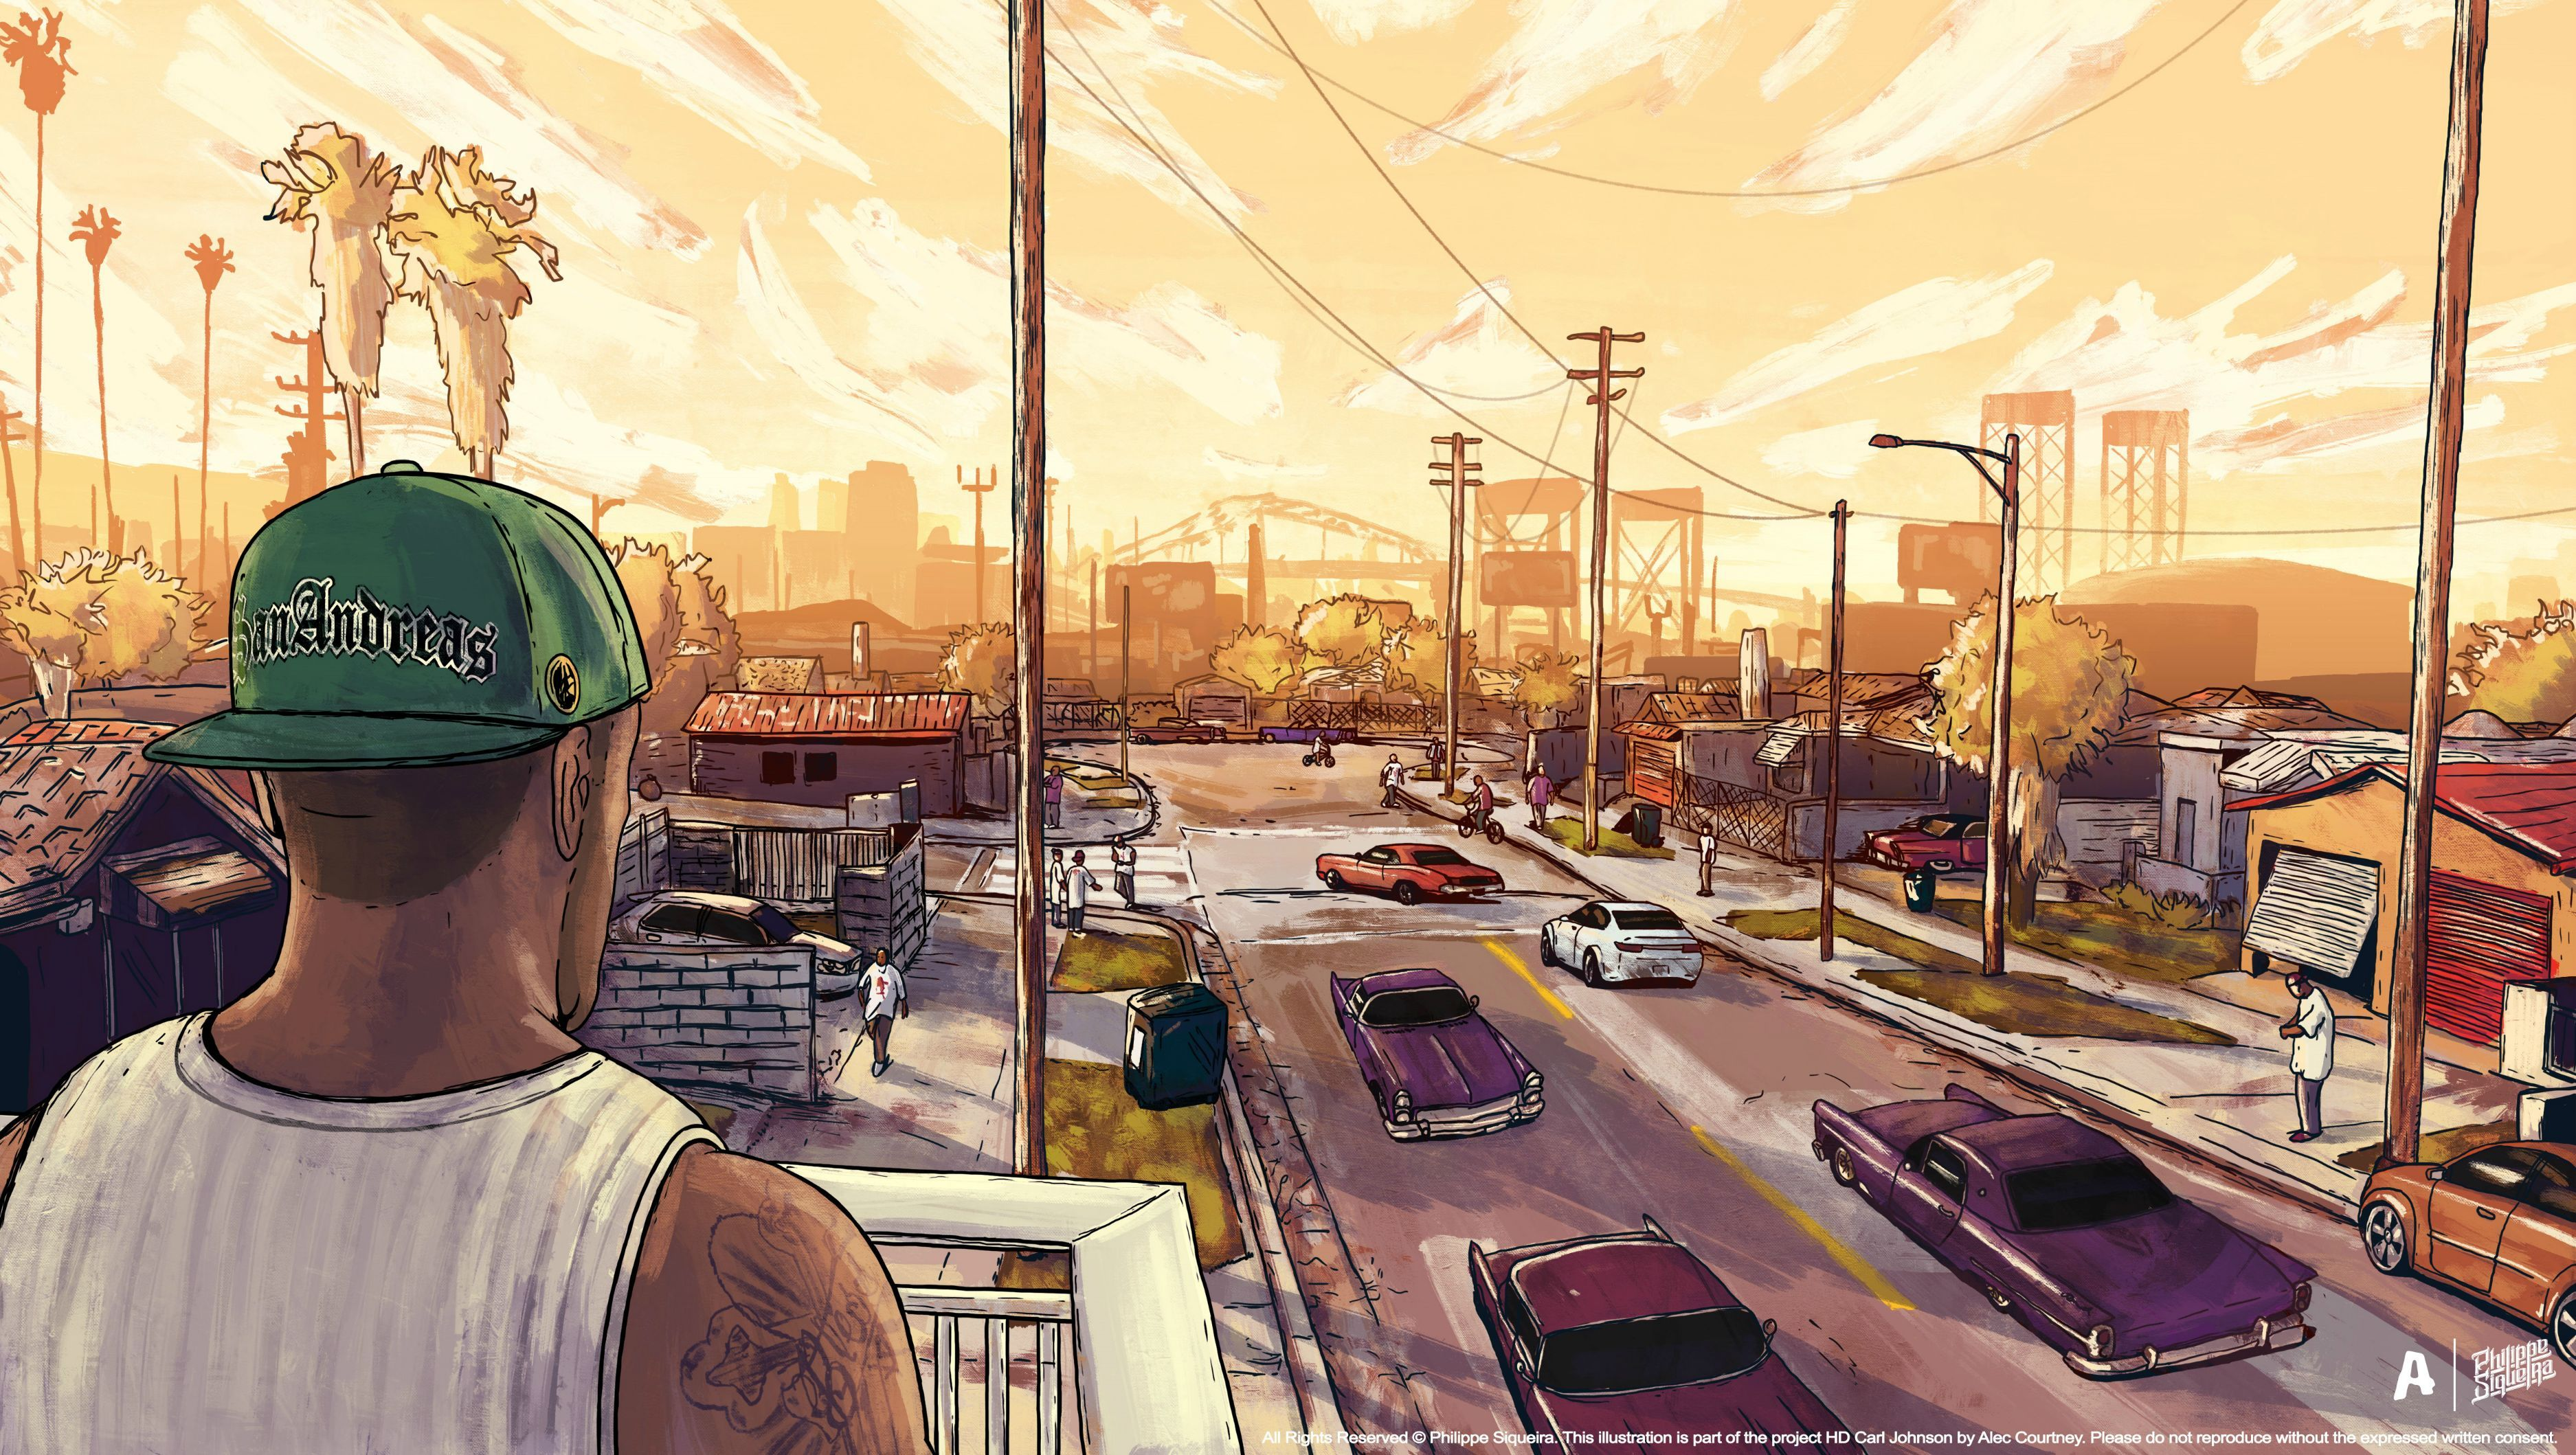 Gta San Andreas Artwork, HD Games, 4k Wallpapers, Image